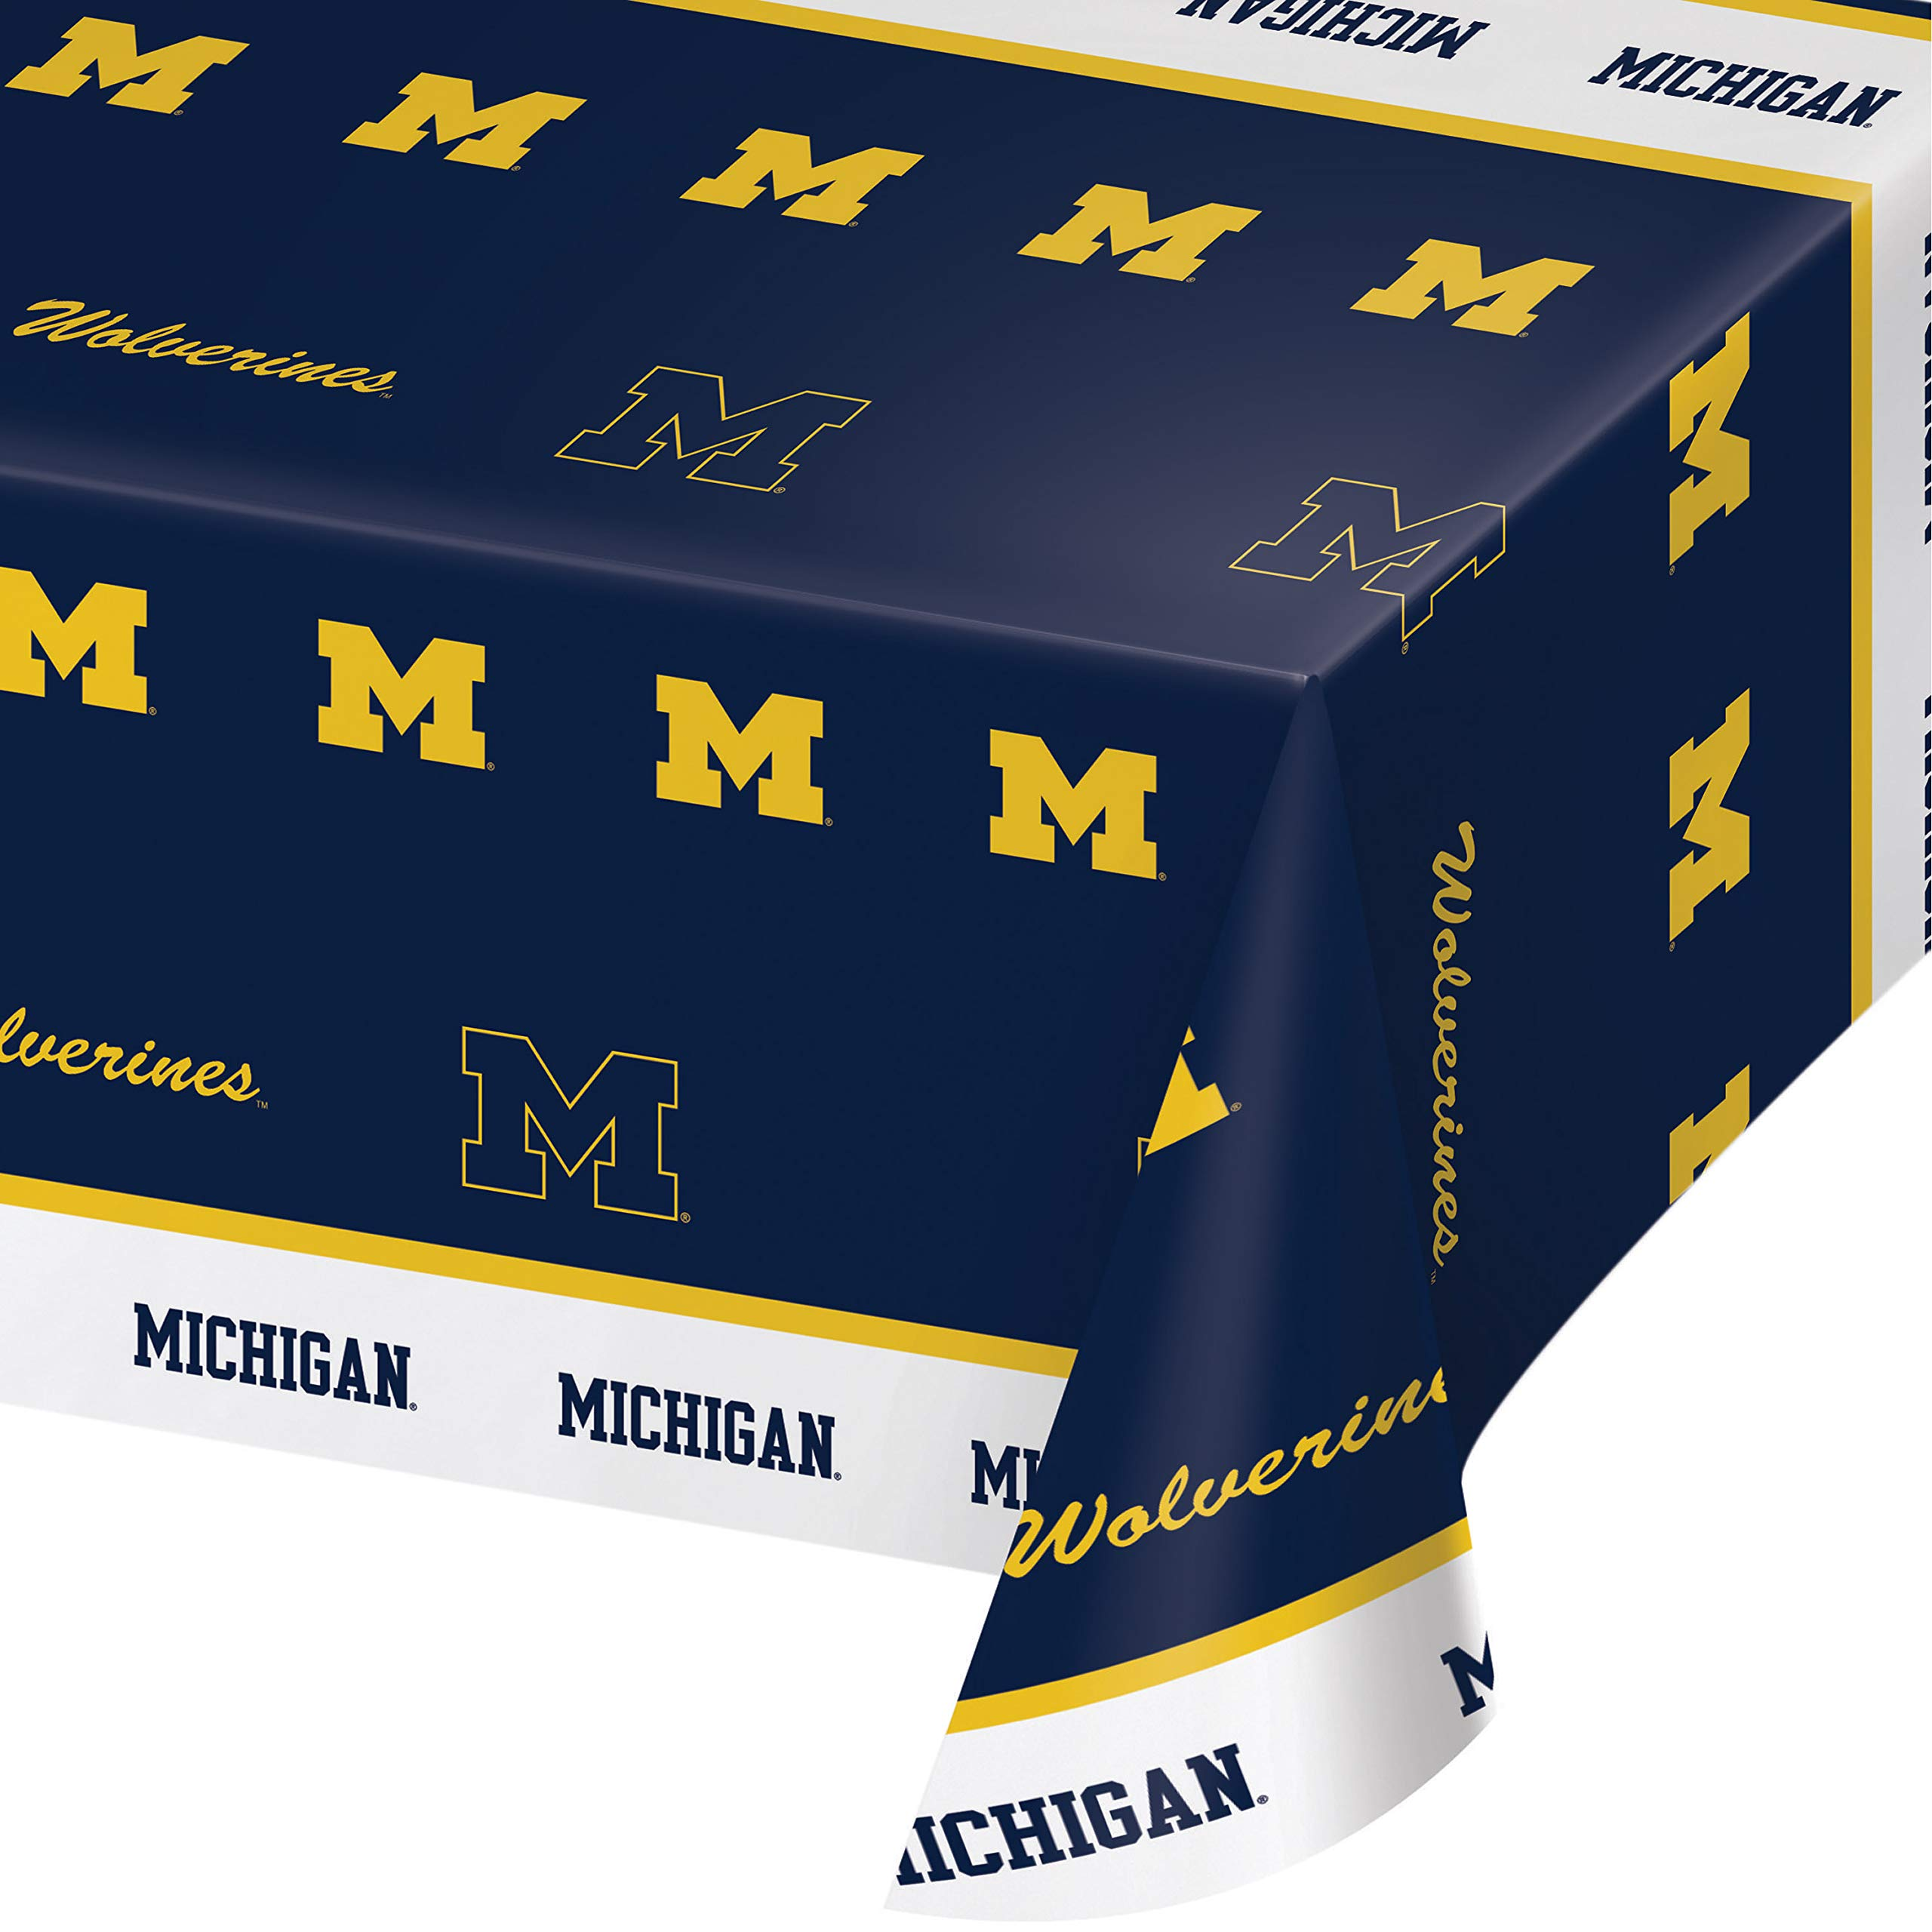 University of Michigan Plastic Tablecloths, 3 ct by Creative Converting